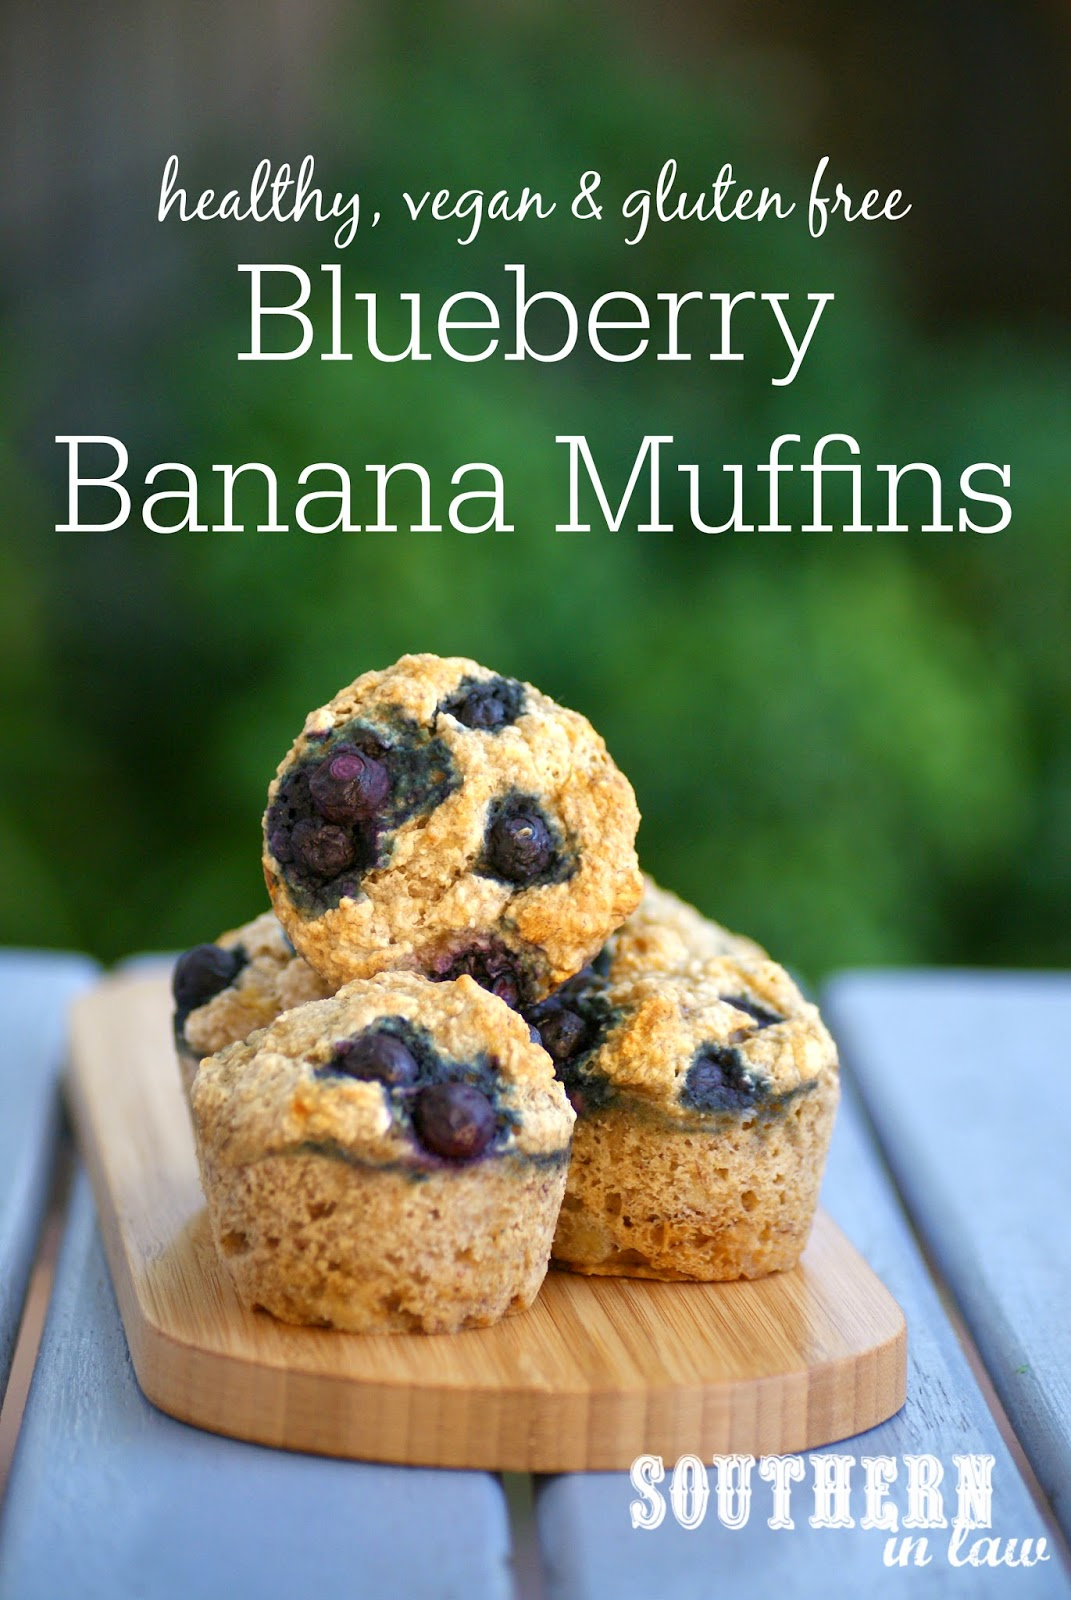 Vegan Blueberry Banana Muffin Recipe  gluten free, vegan, low fat, refined sugar free, clean eating friendly